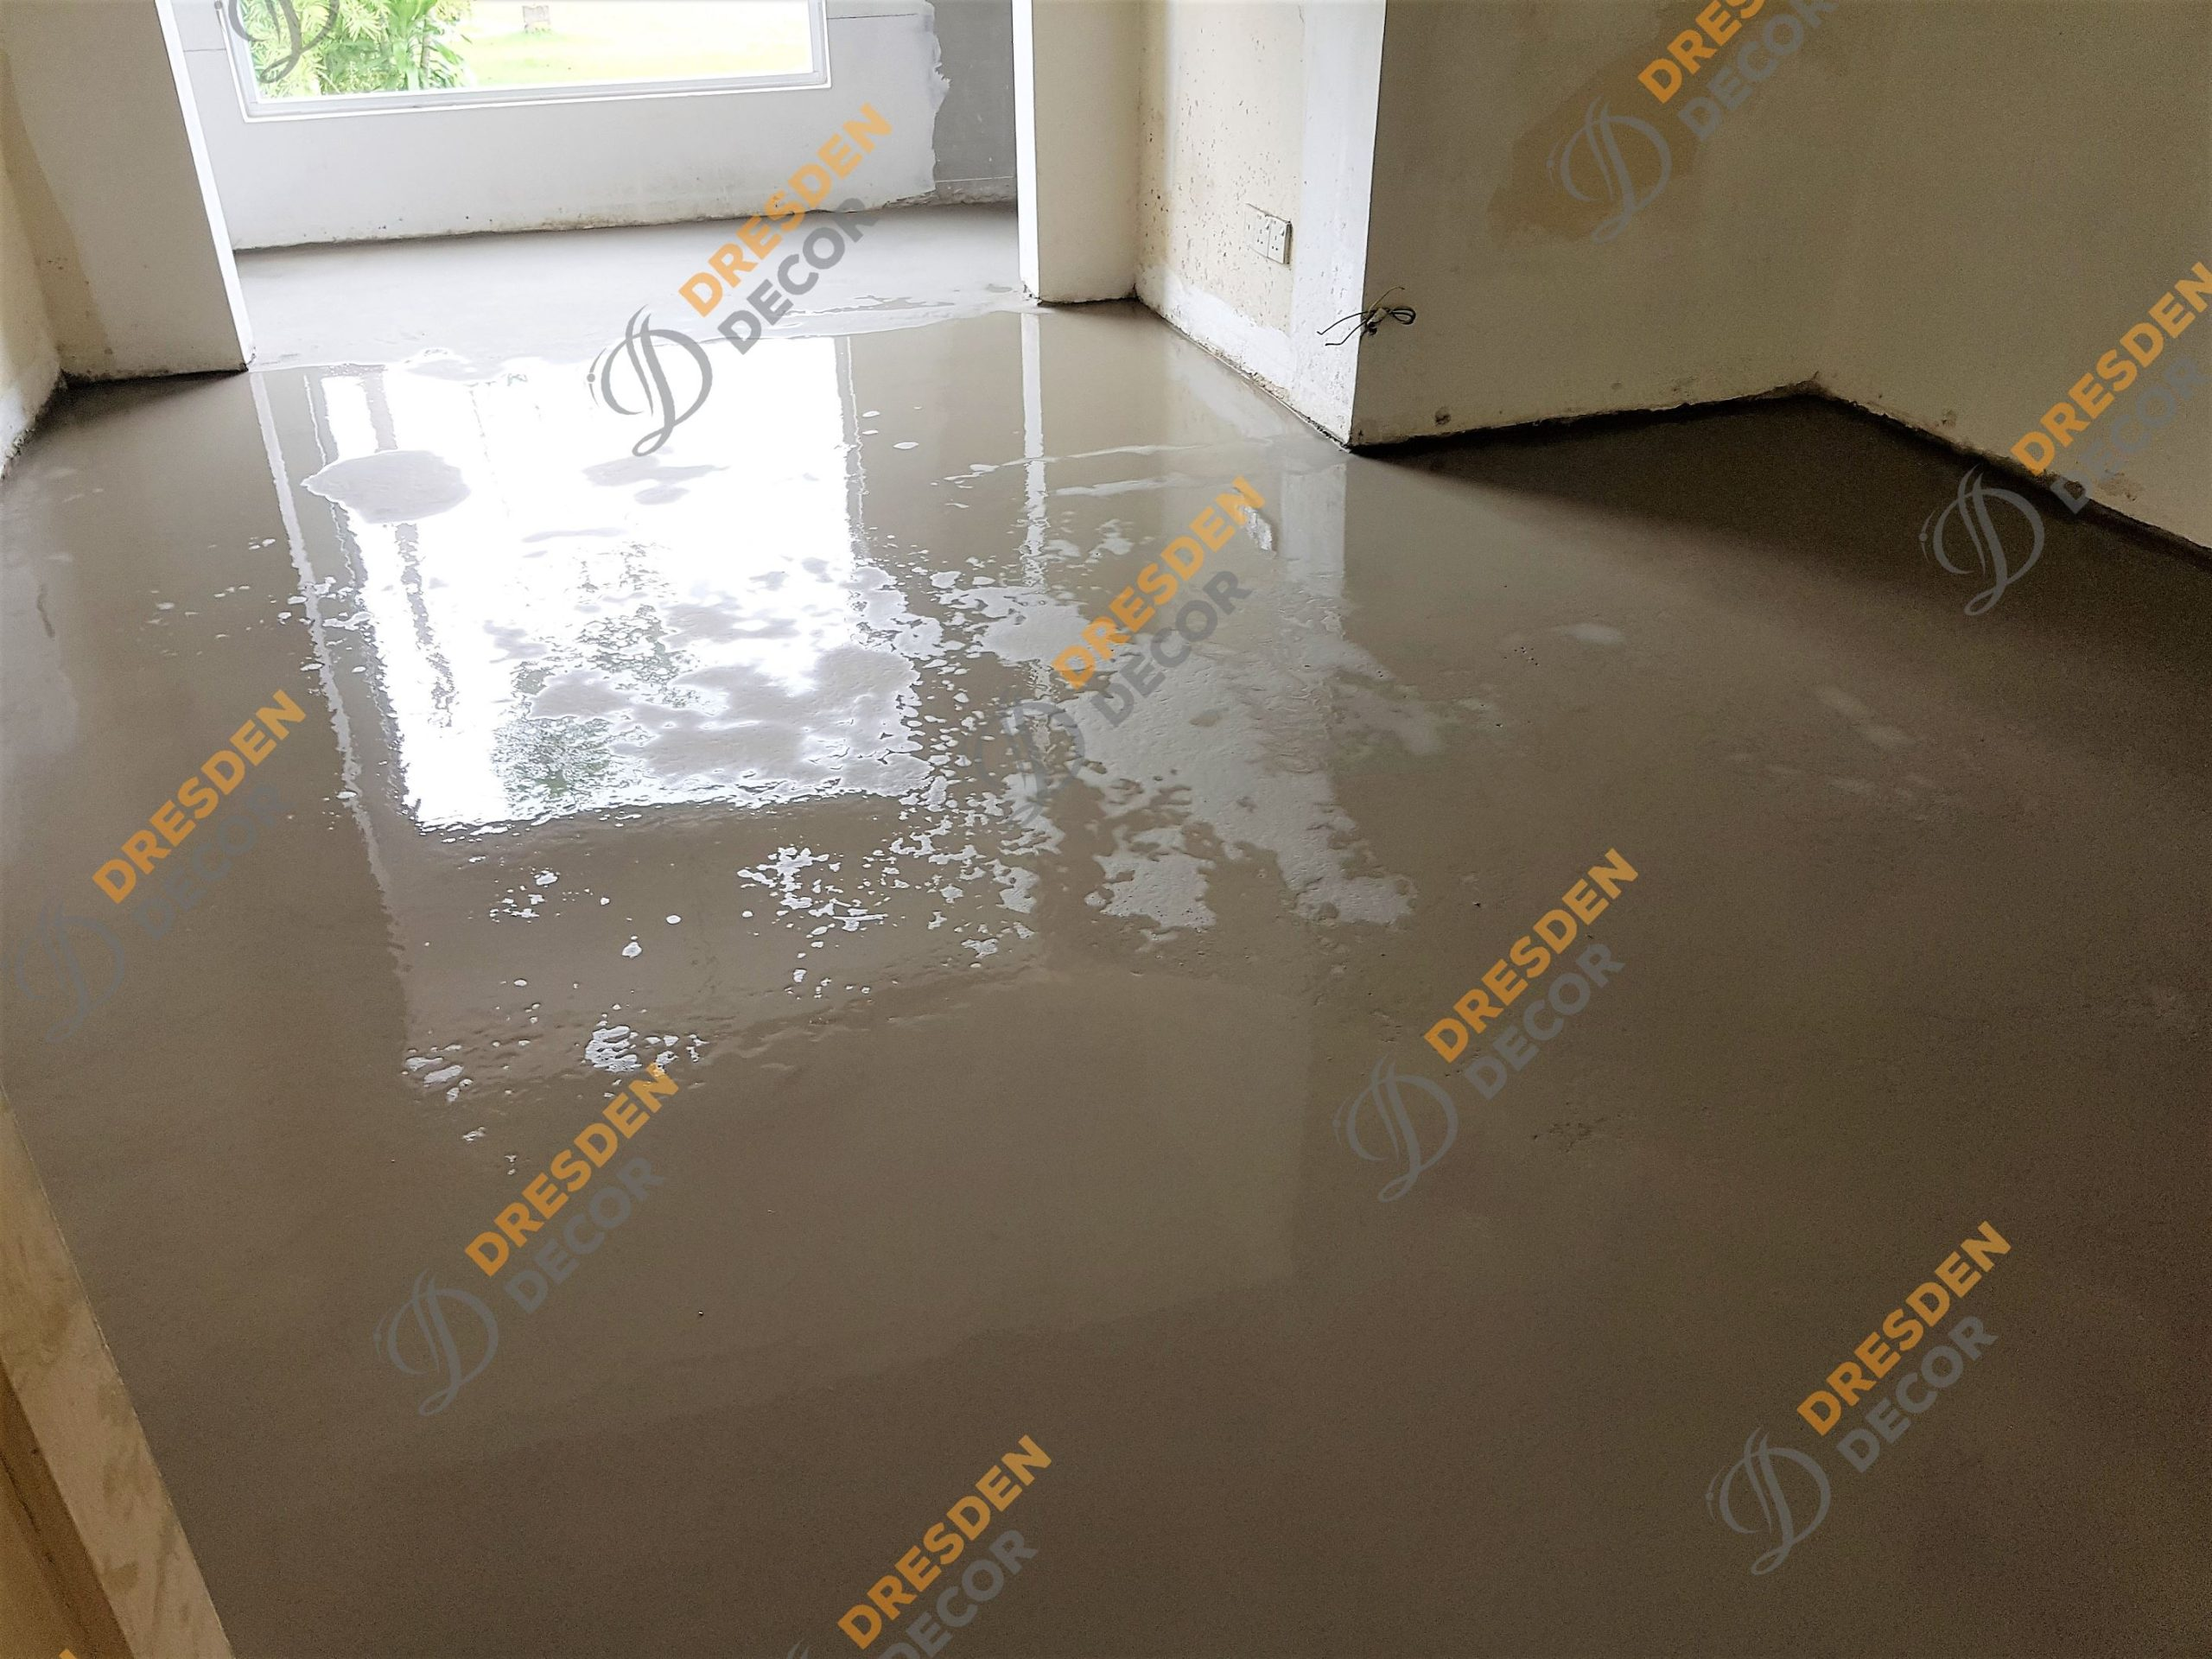 Private Residence-Self Leveling